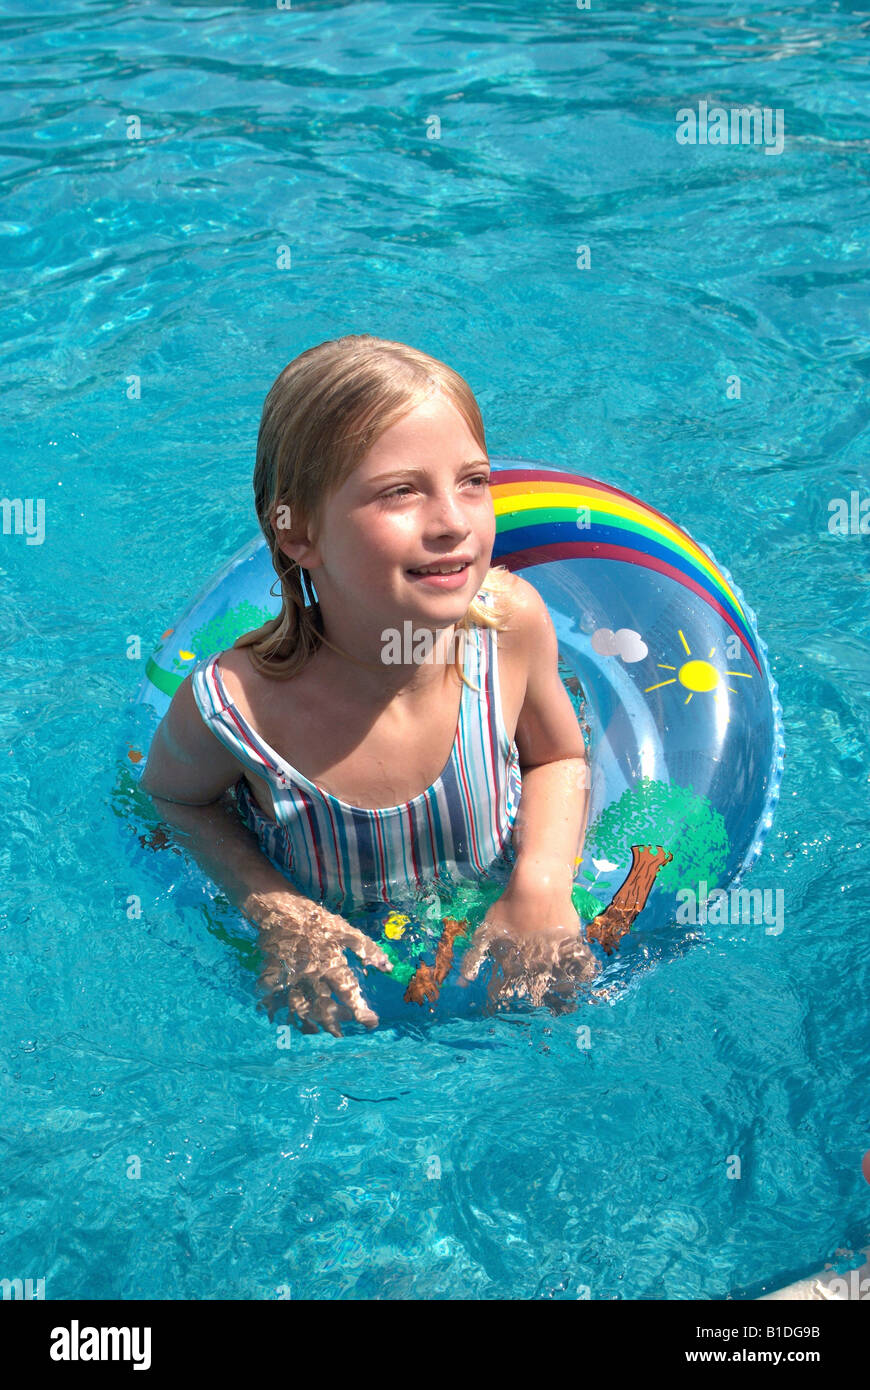 Float Berlin Girl With Swim Ring In A Swimming Pool Stock Photo